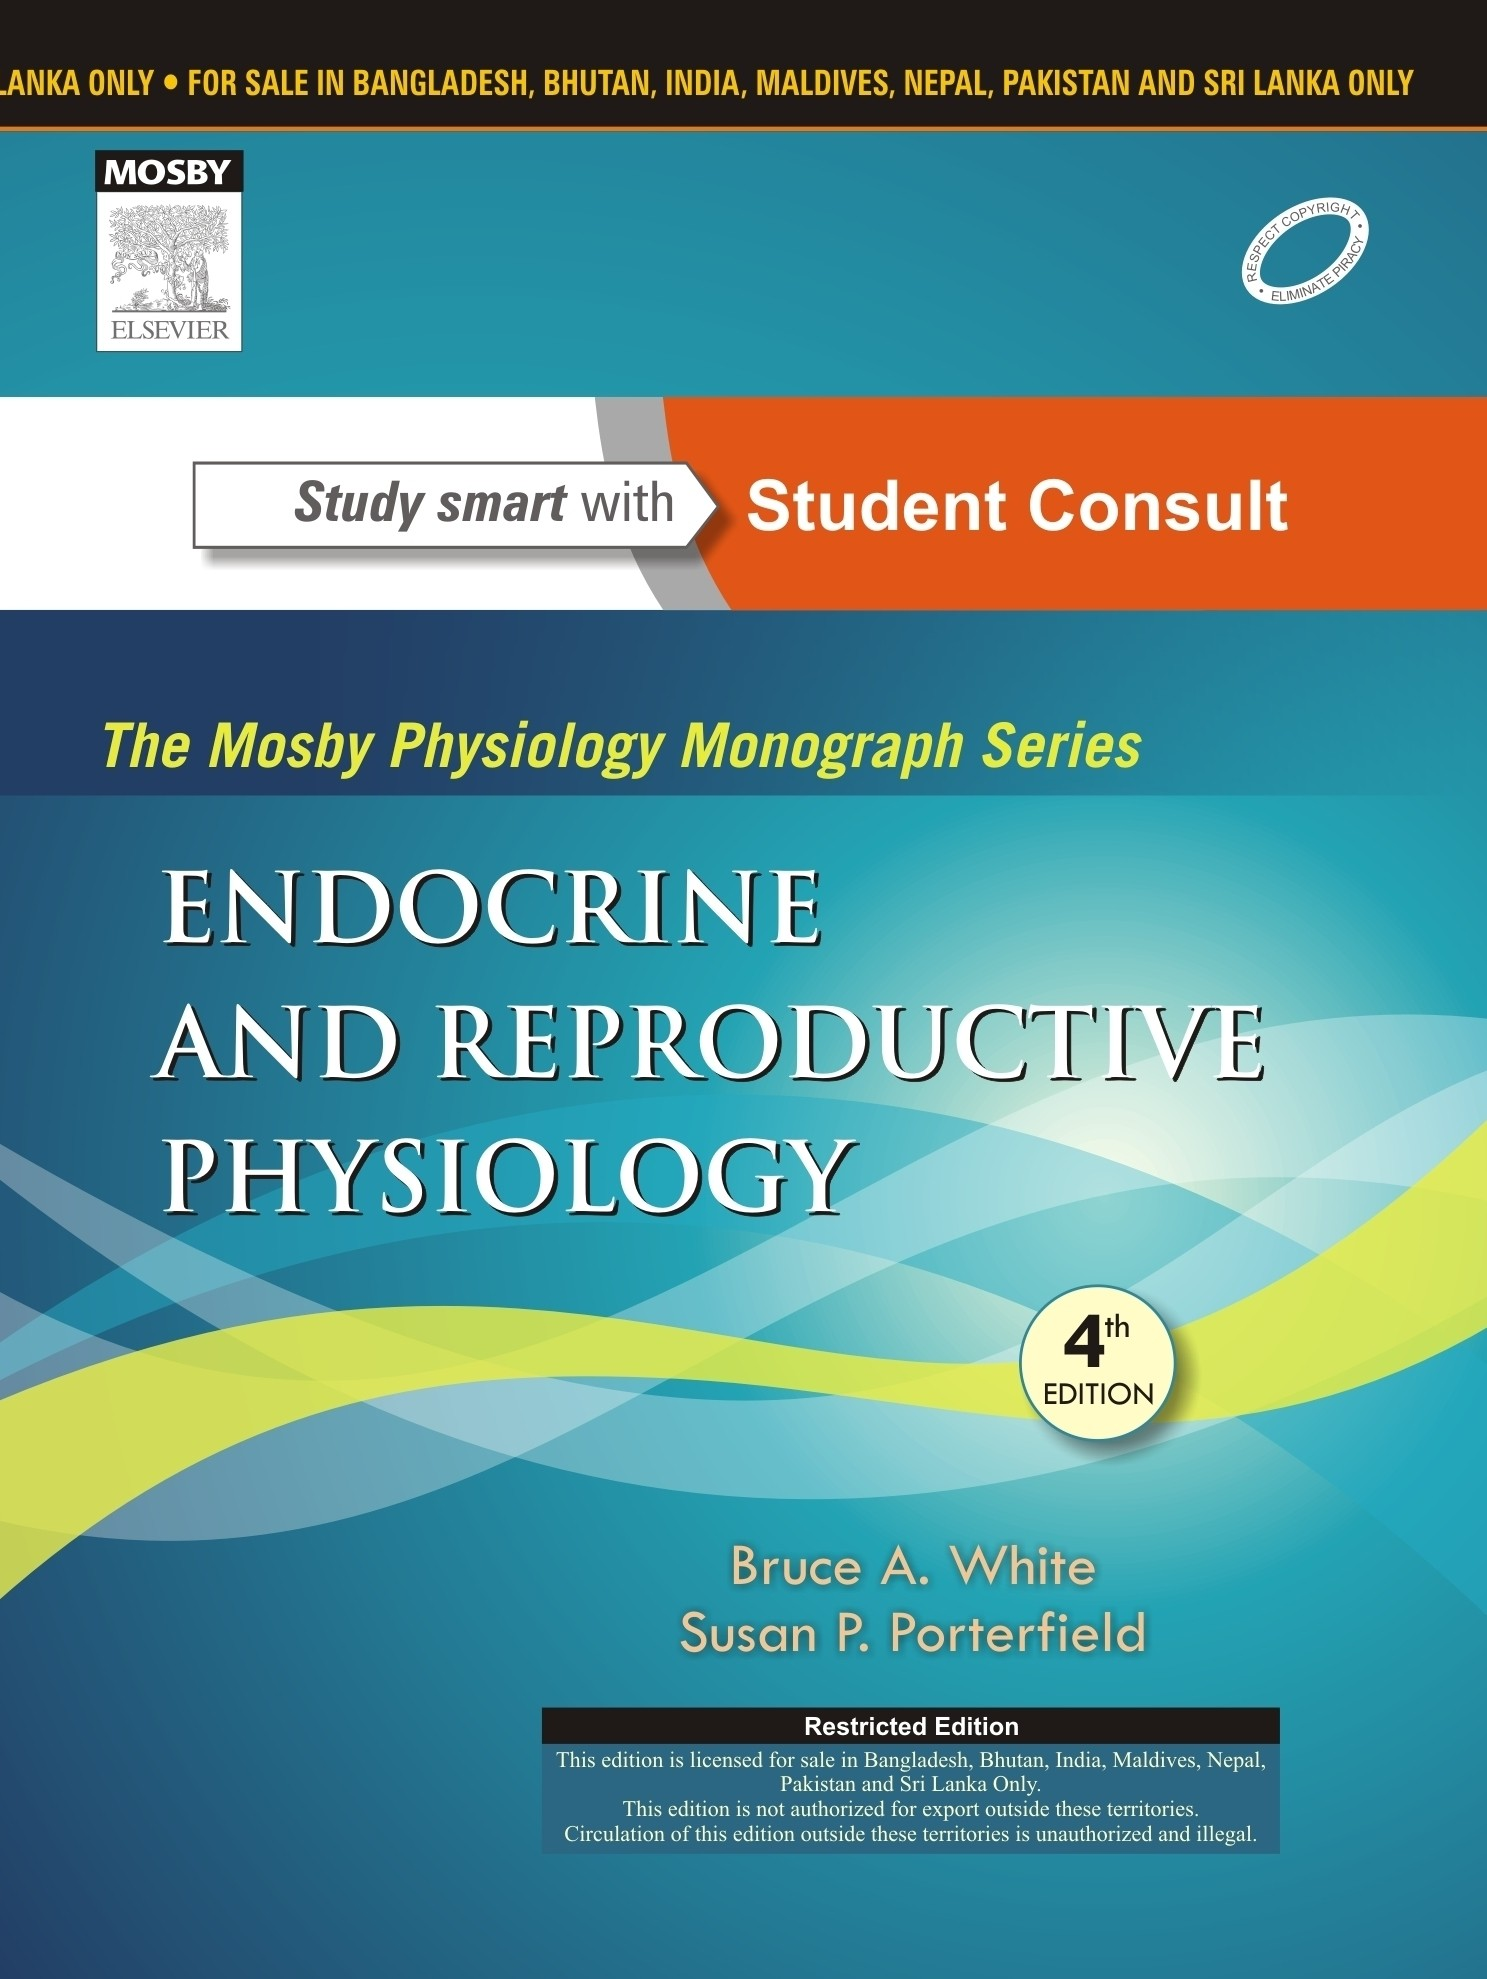 The Mosby Physiology Monograph